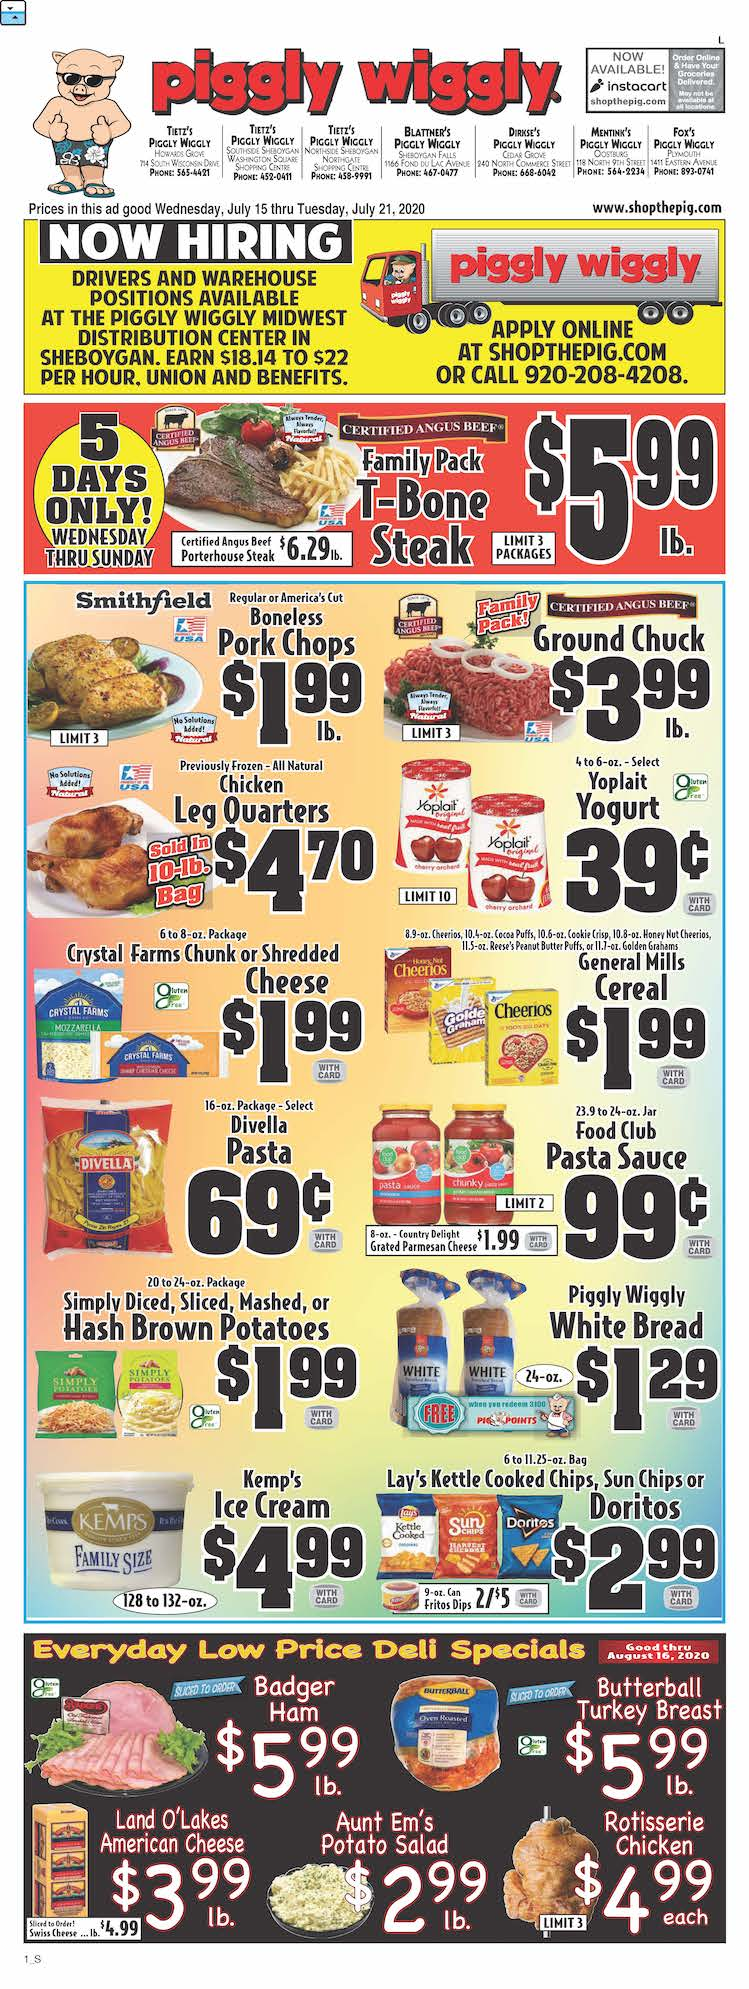 piggly wiggly ad jul 15 2020